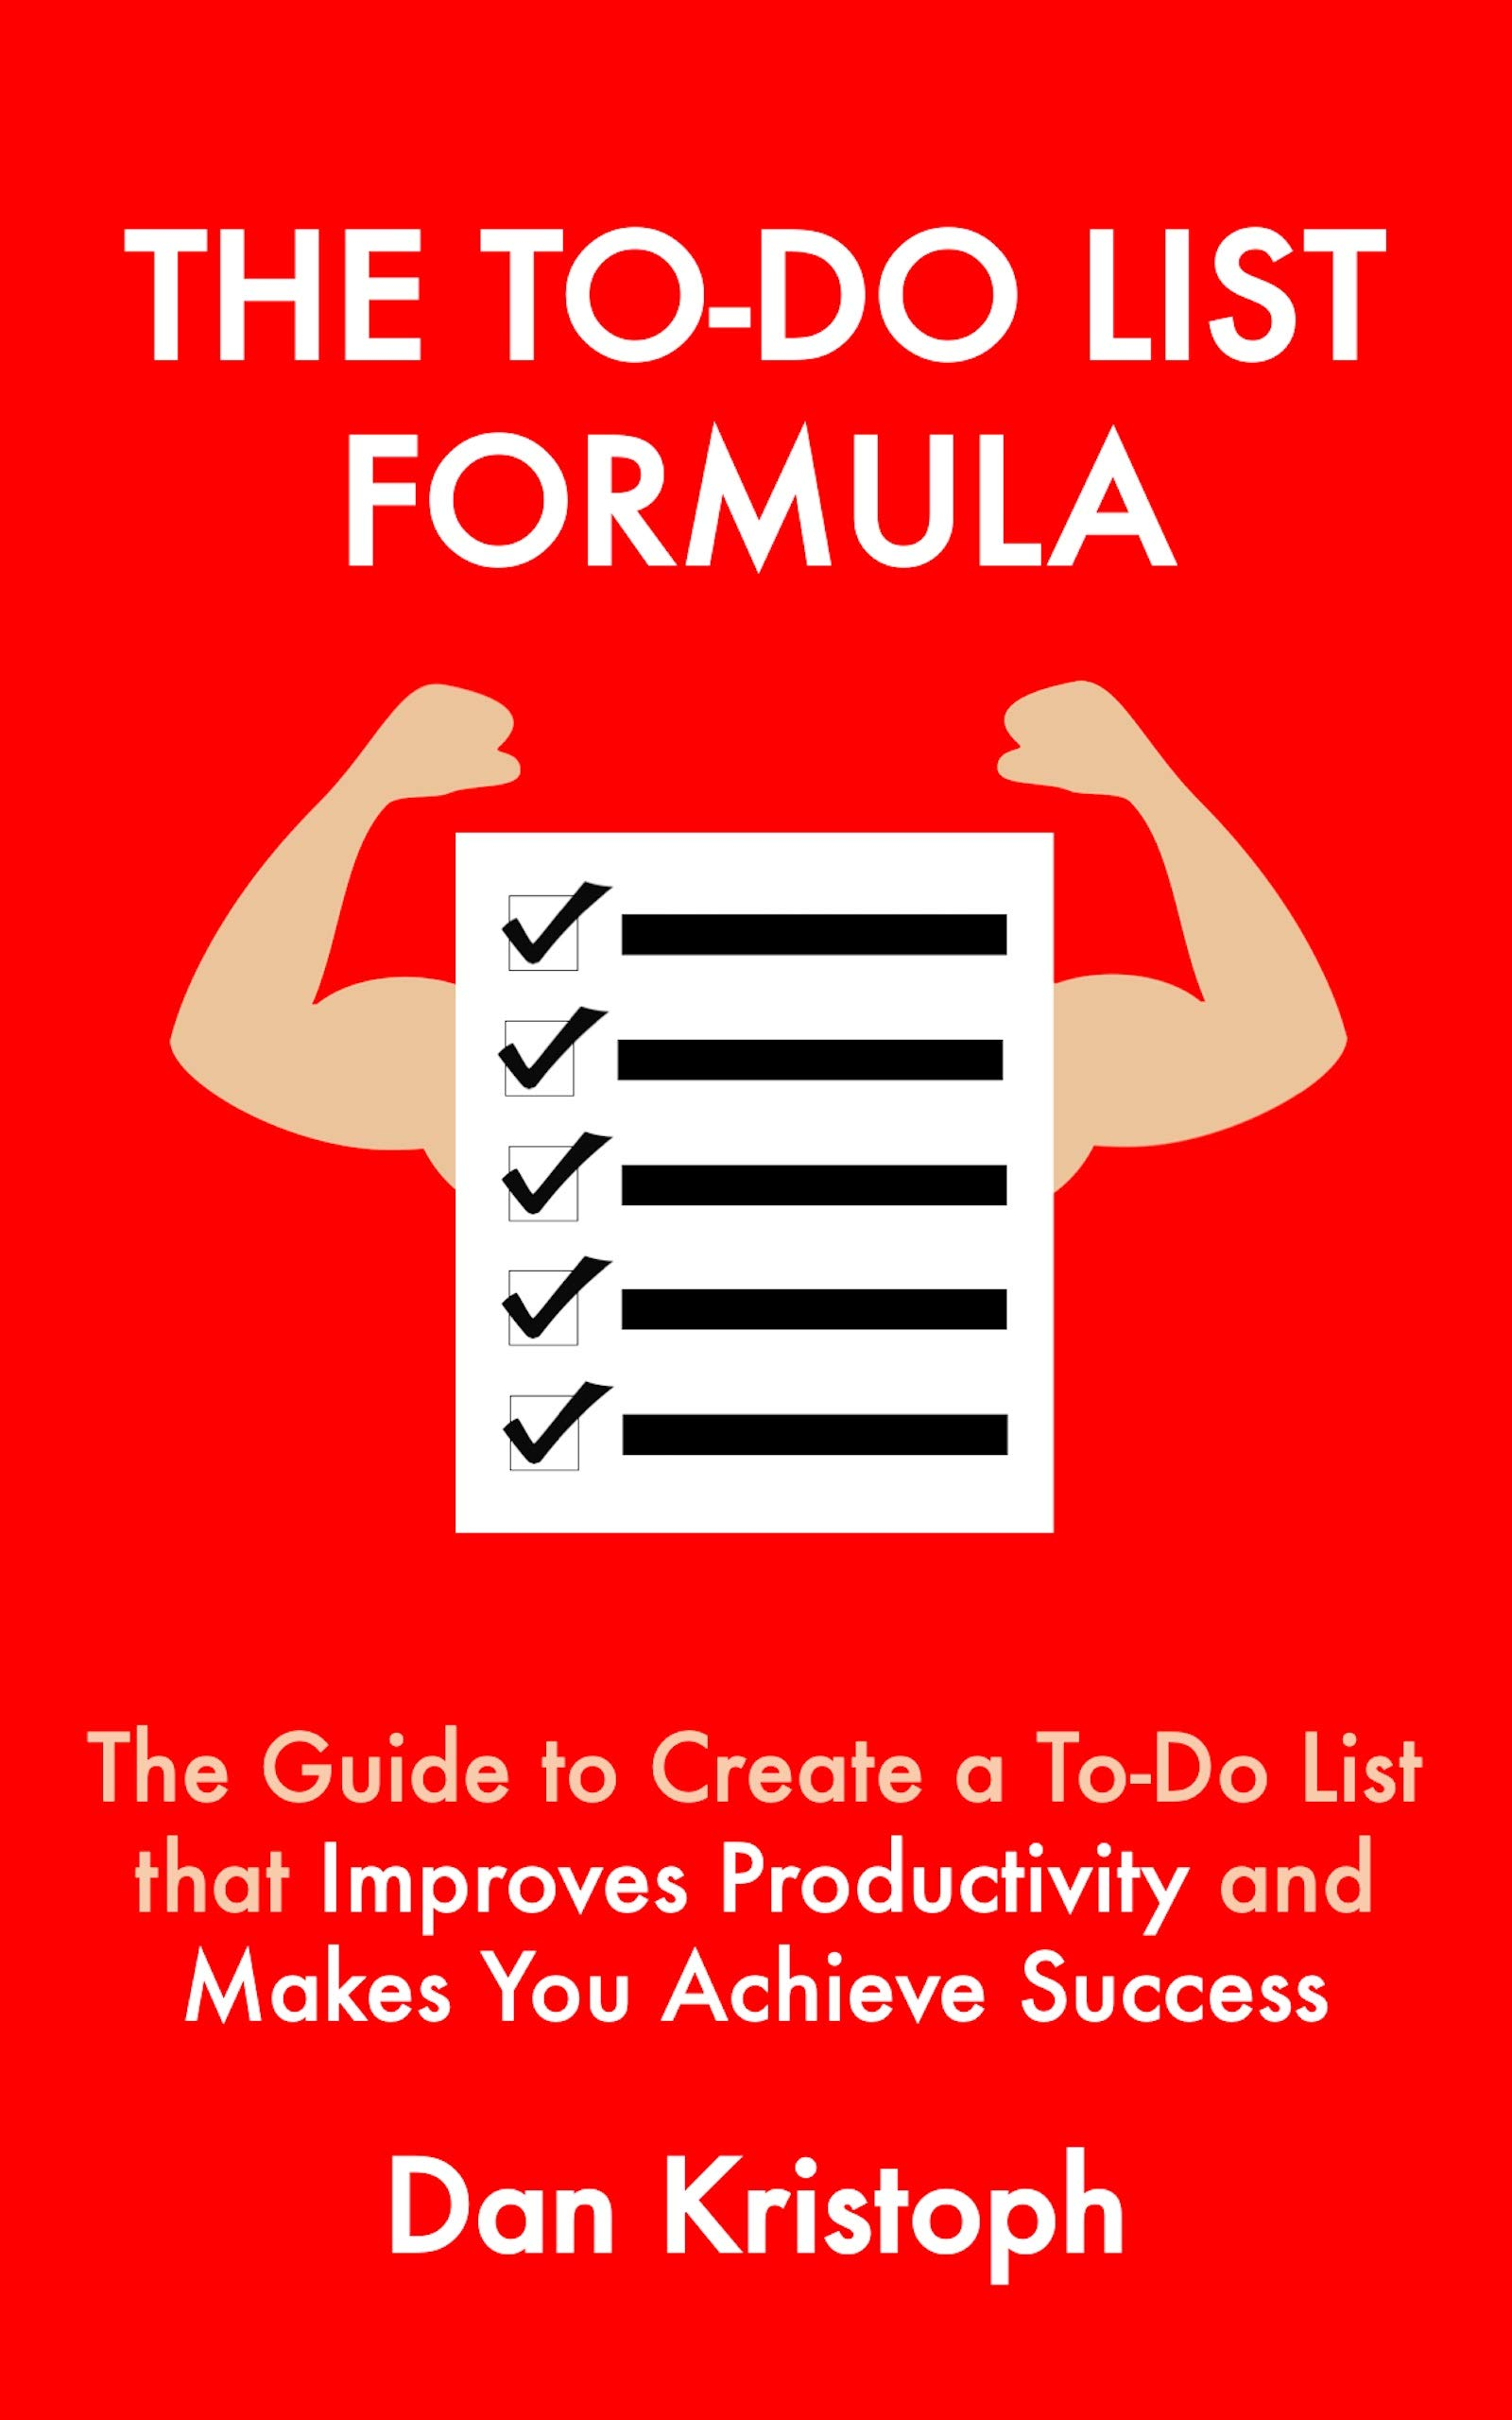 The To-Do List Formula: The Guide to Create a To-Do List that Improves Improductivity and Makes You Achieve Success (Practical Productivity Book 3)